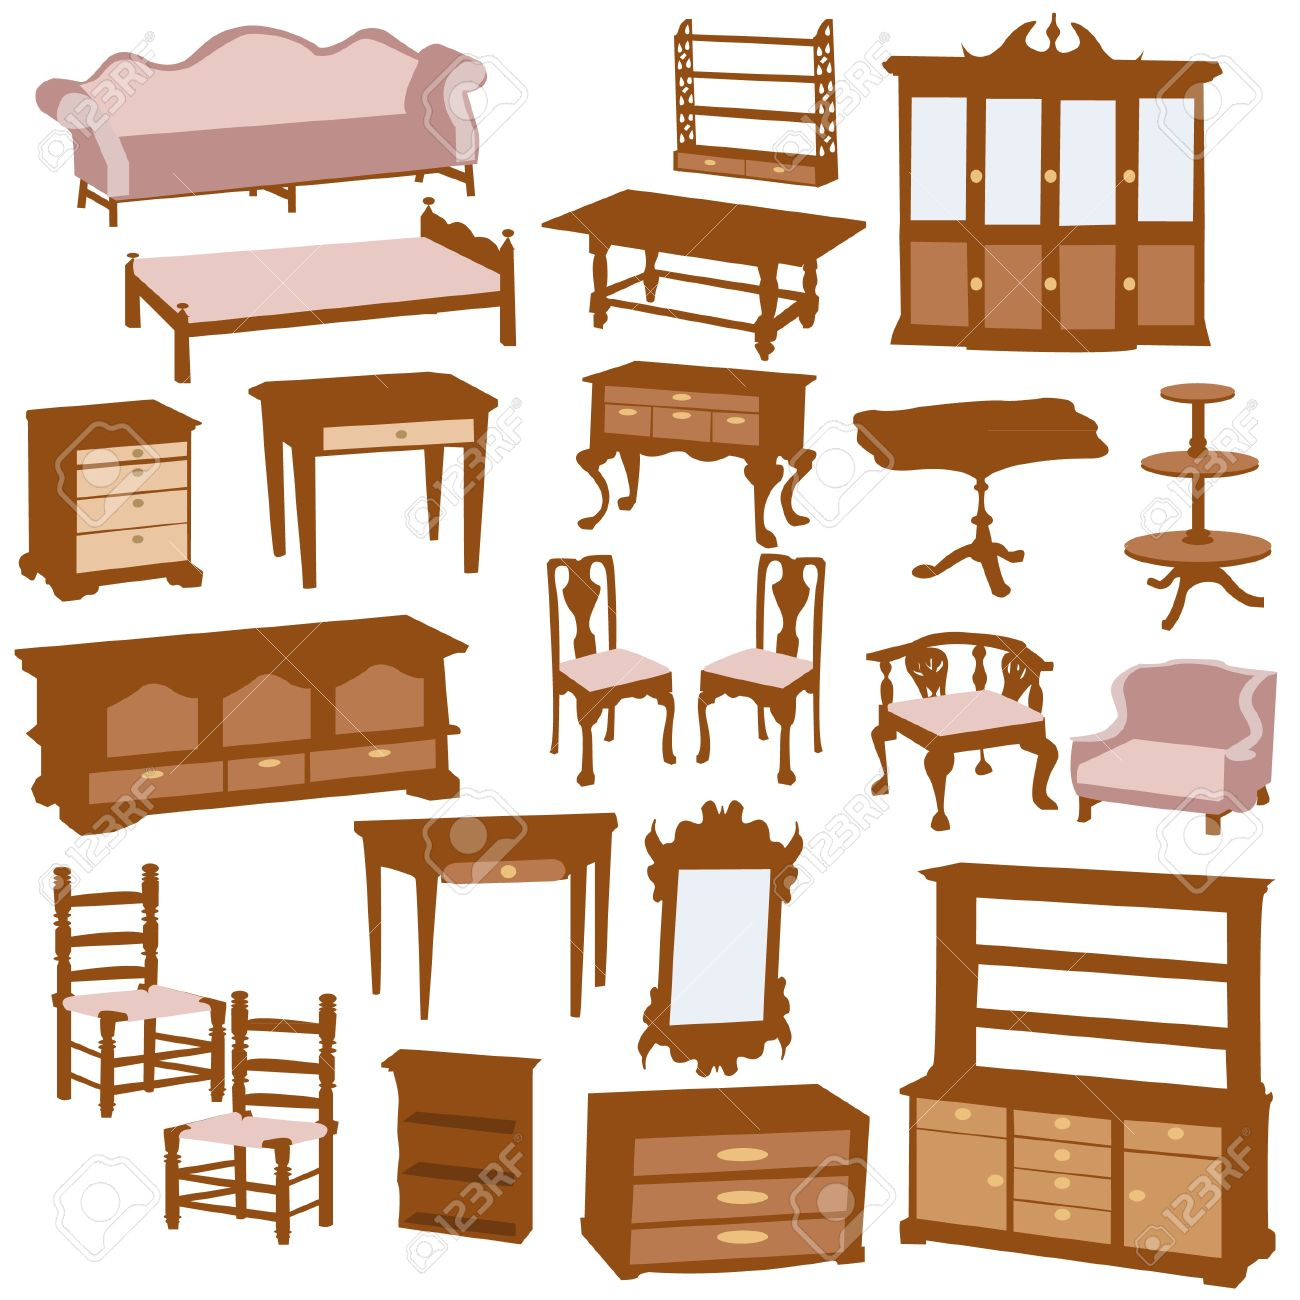 Wood Furniture Clipart.